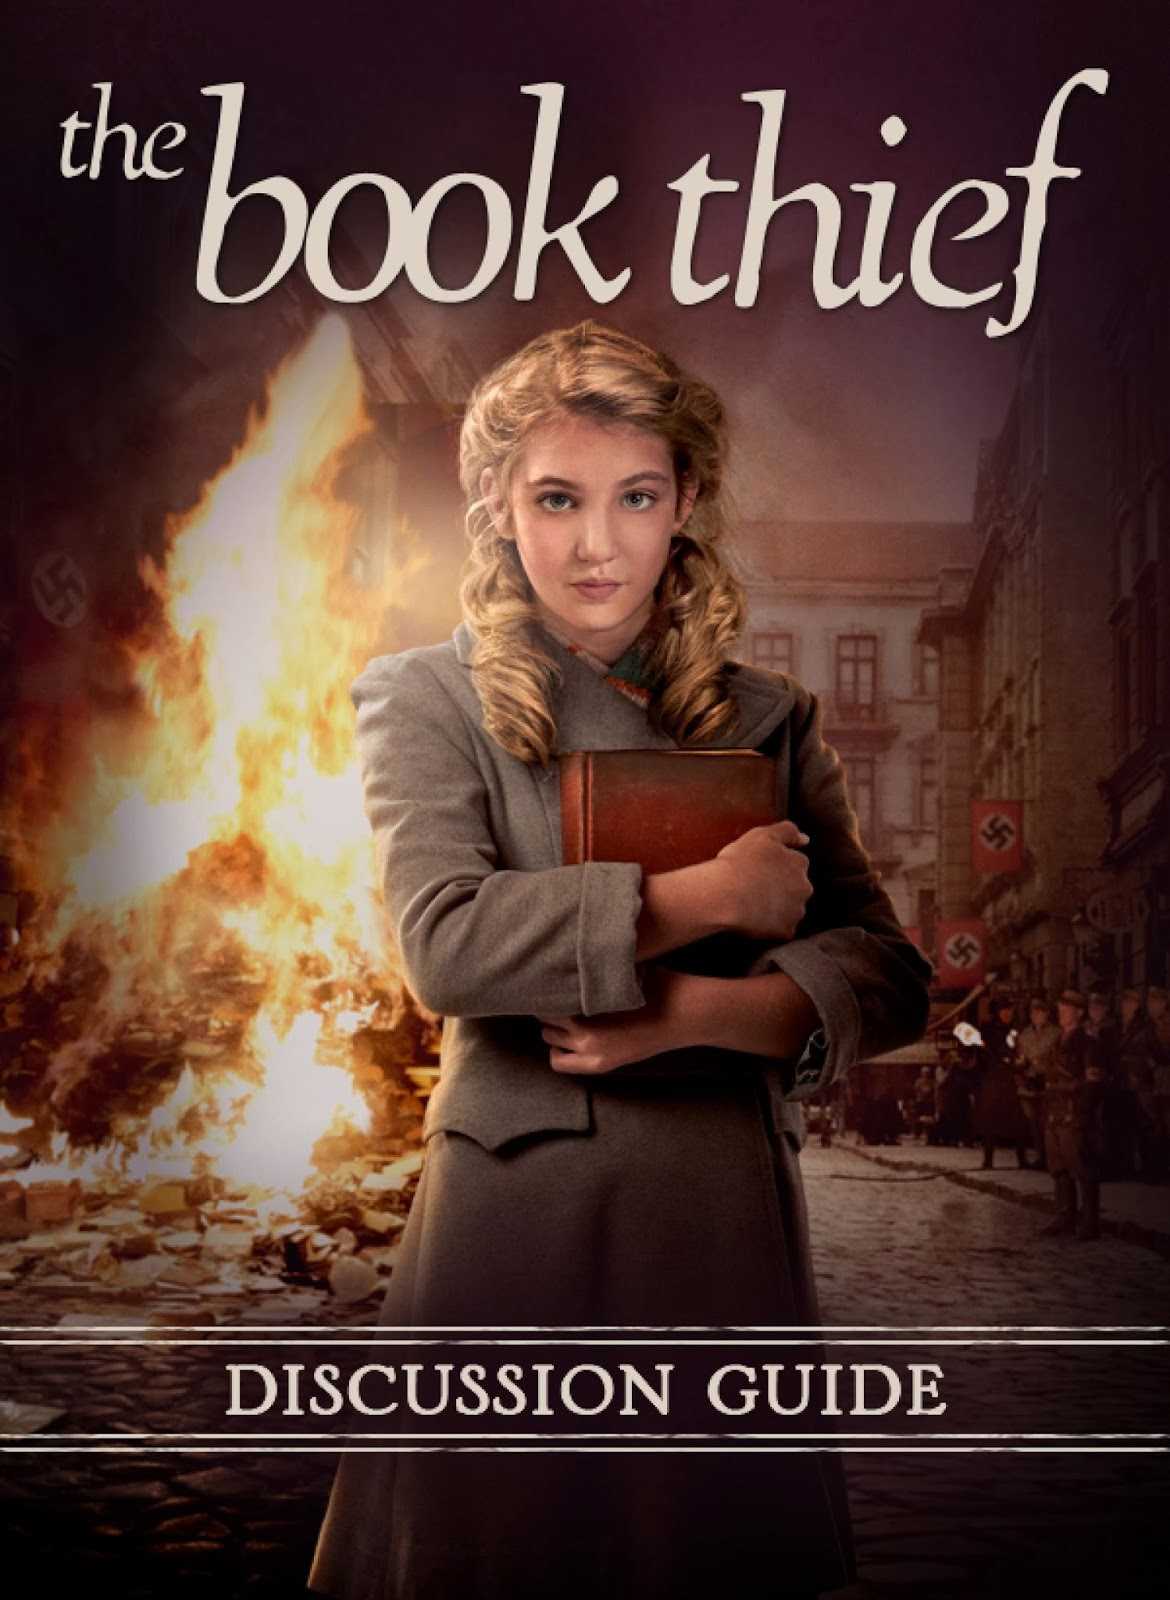 The Book Thief, Fox Home Entertainment